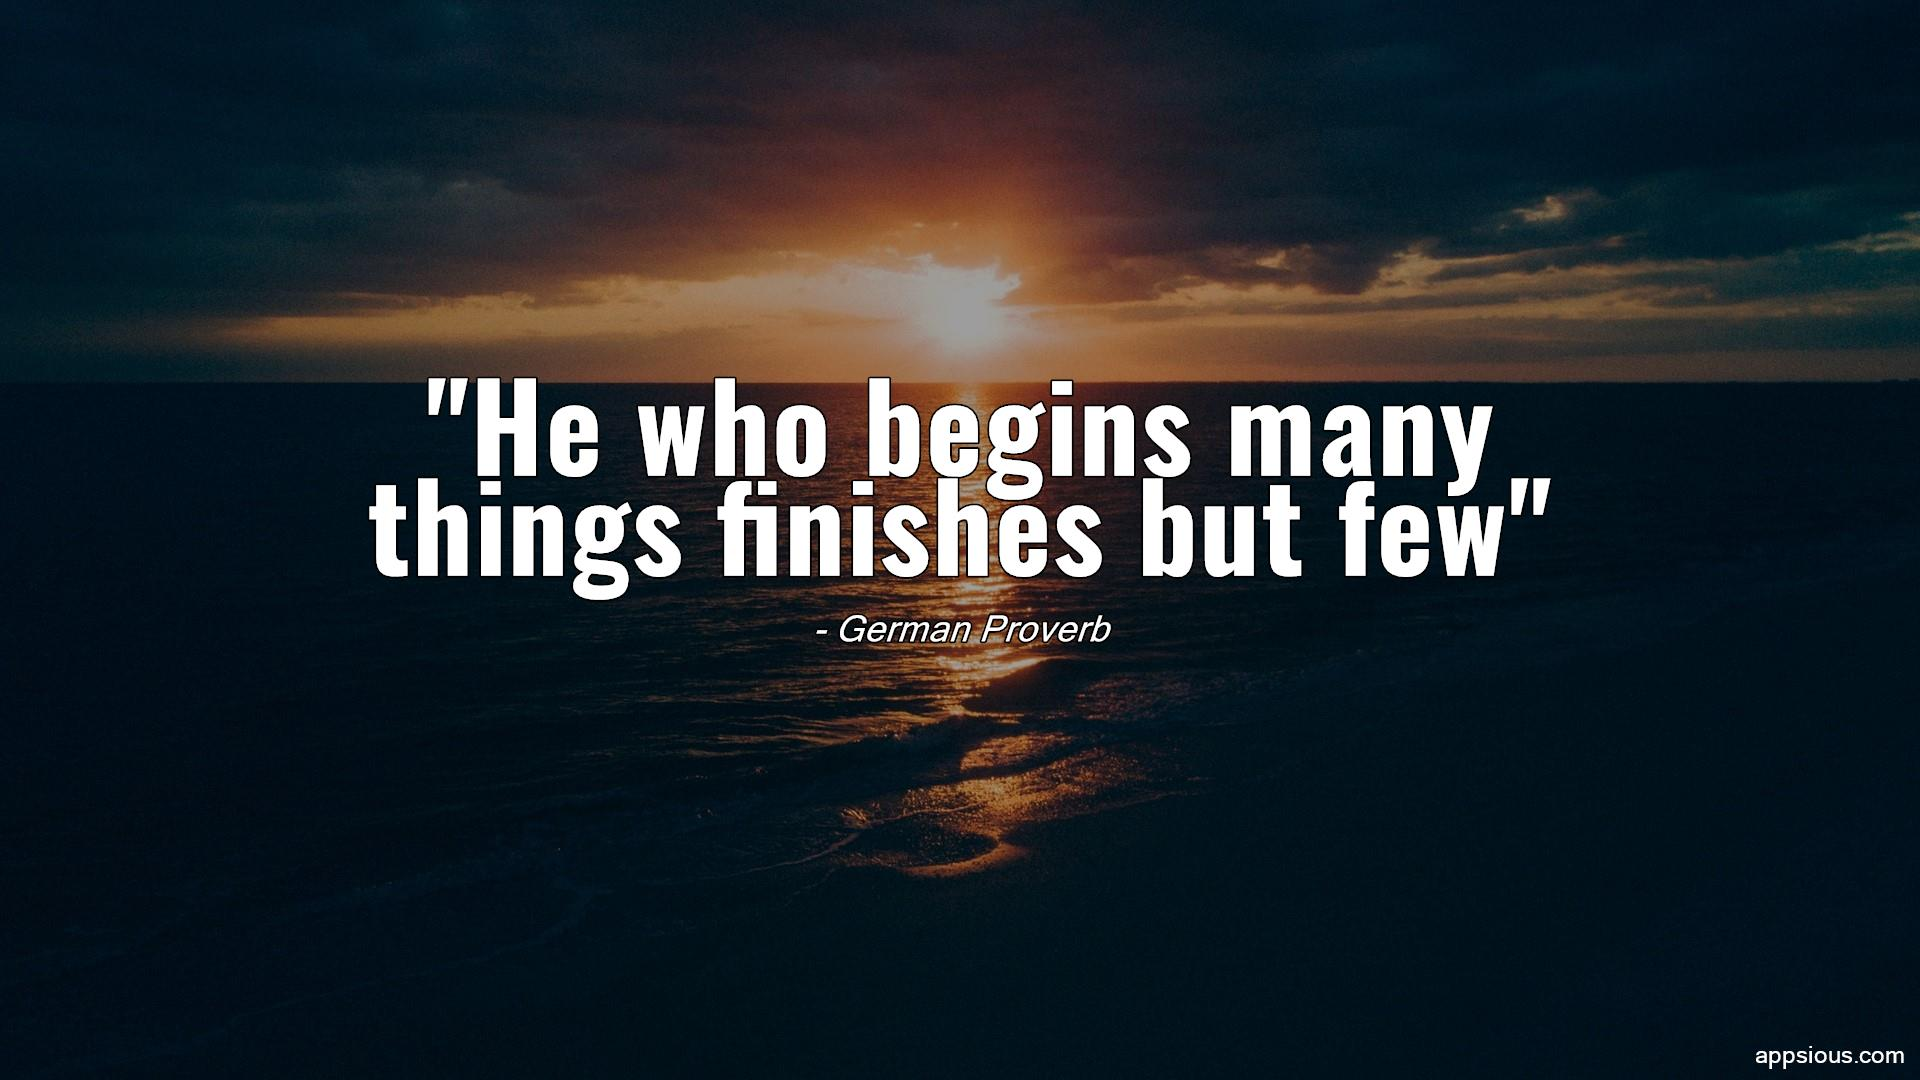 He who begins many things finishes but few